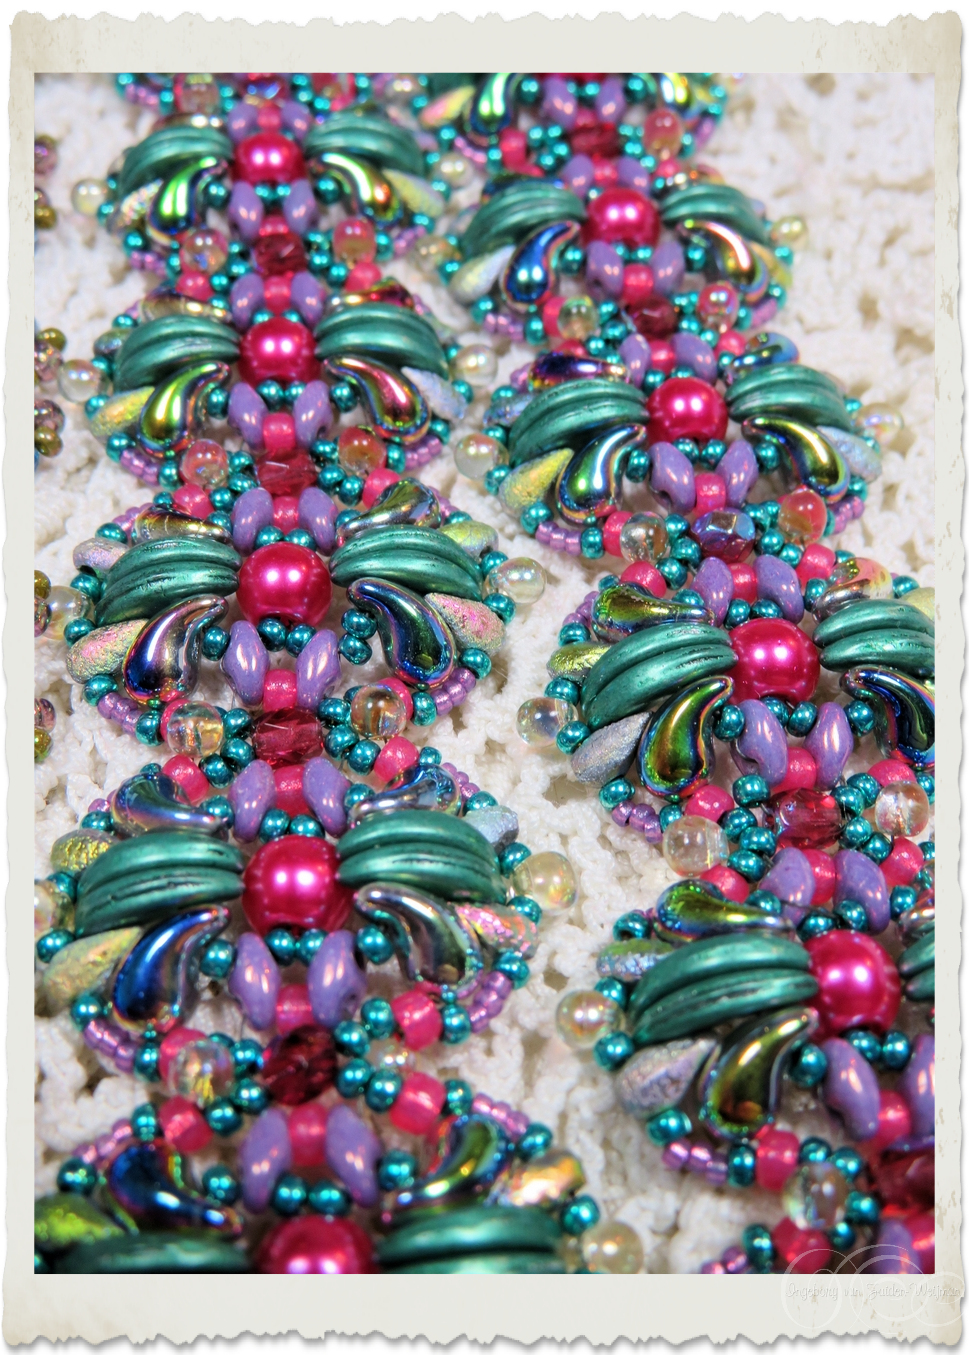 Details of pink pearls and blue green crescent beads.